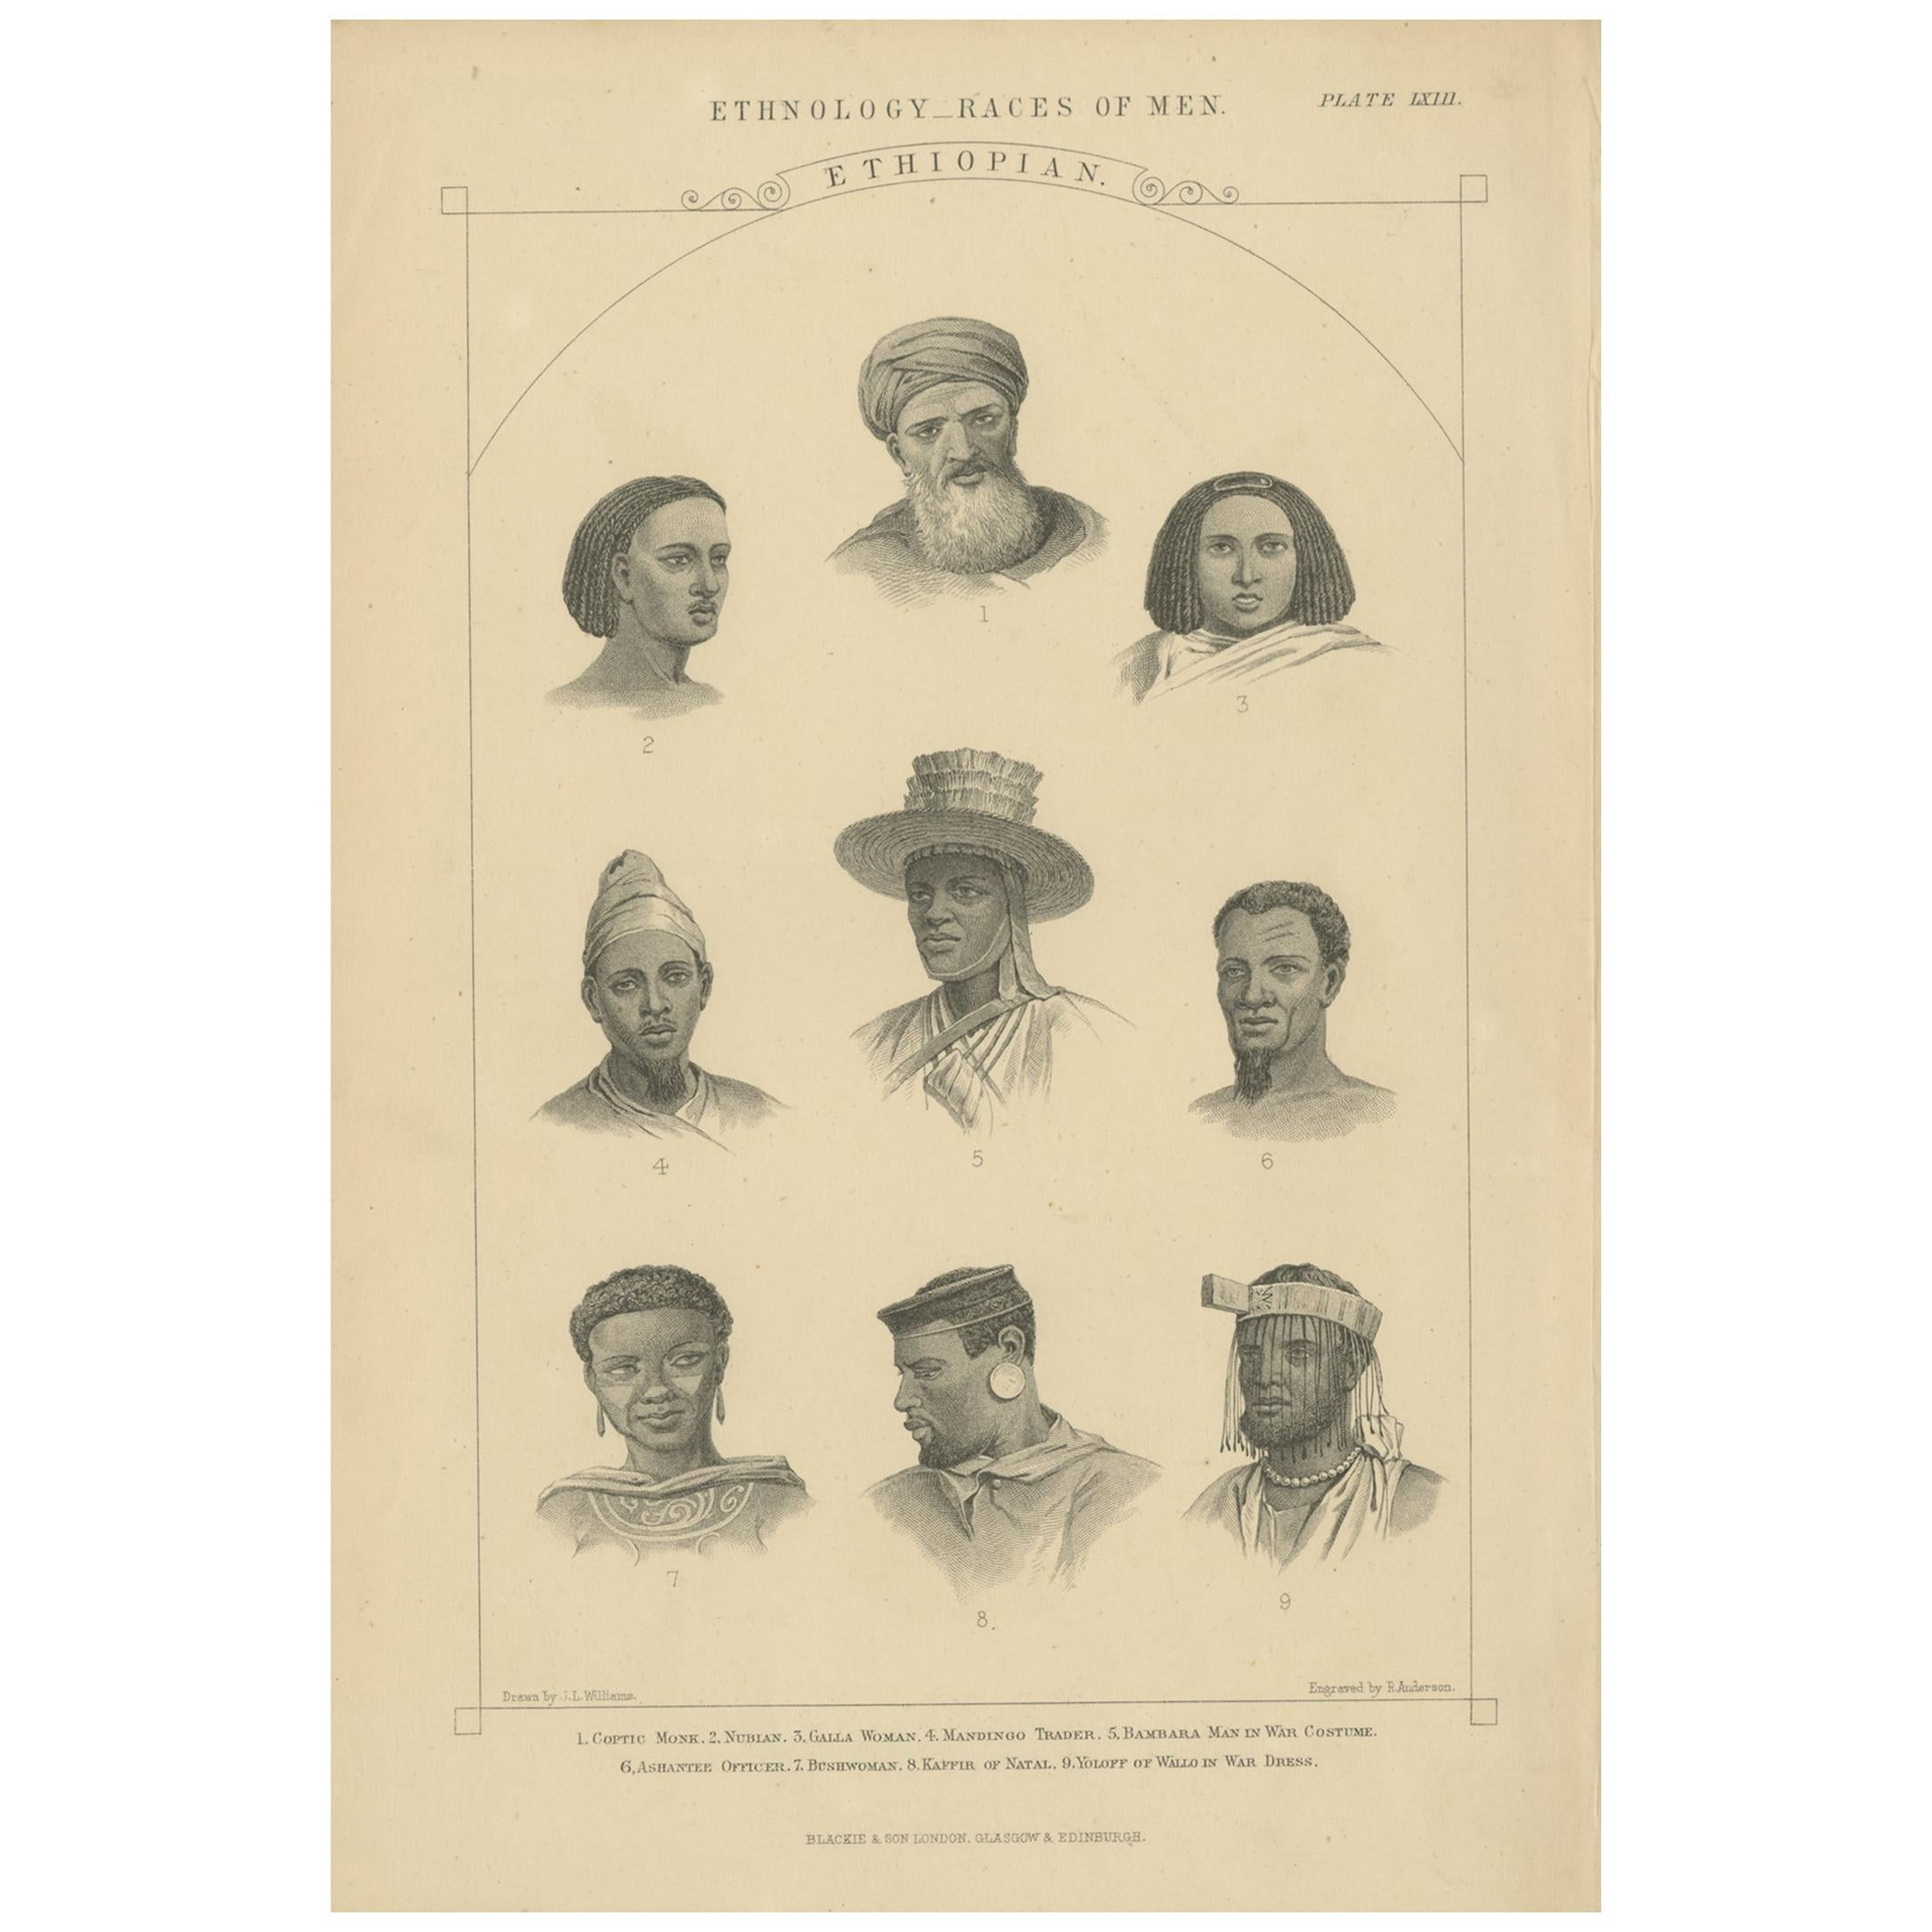 Antique Print of People of Ethiopia by Blackie & Son, circa 1875